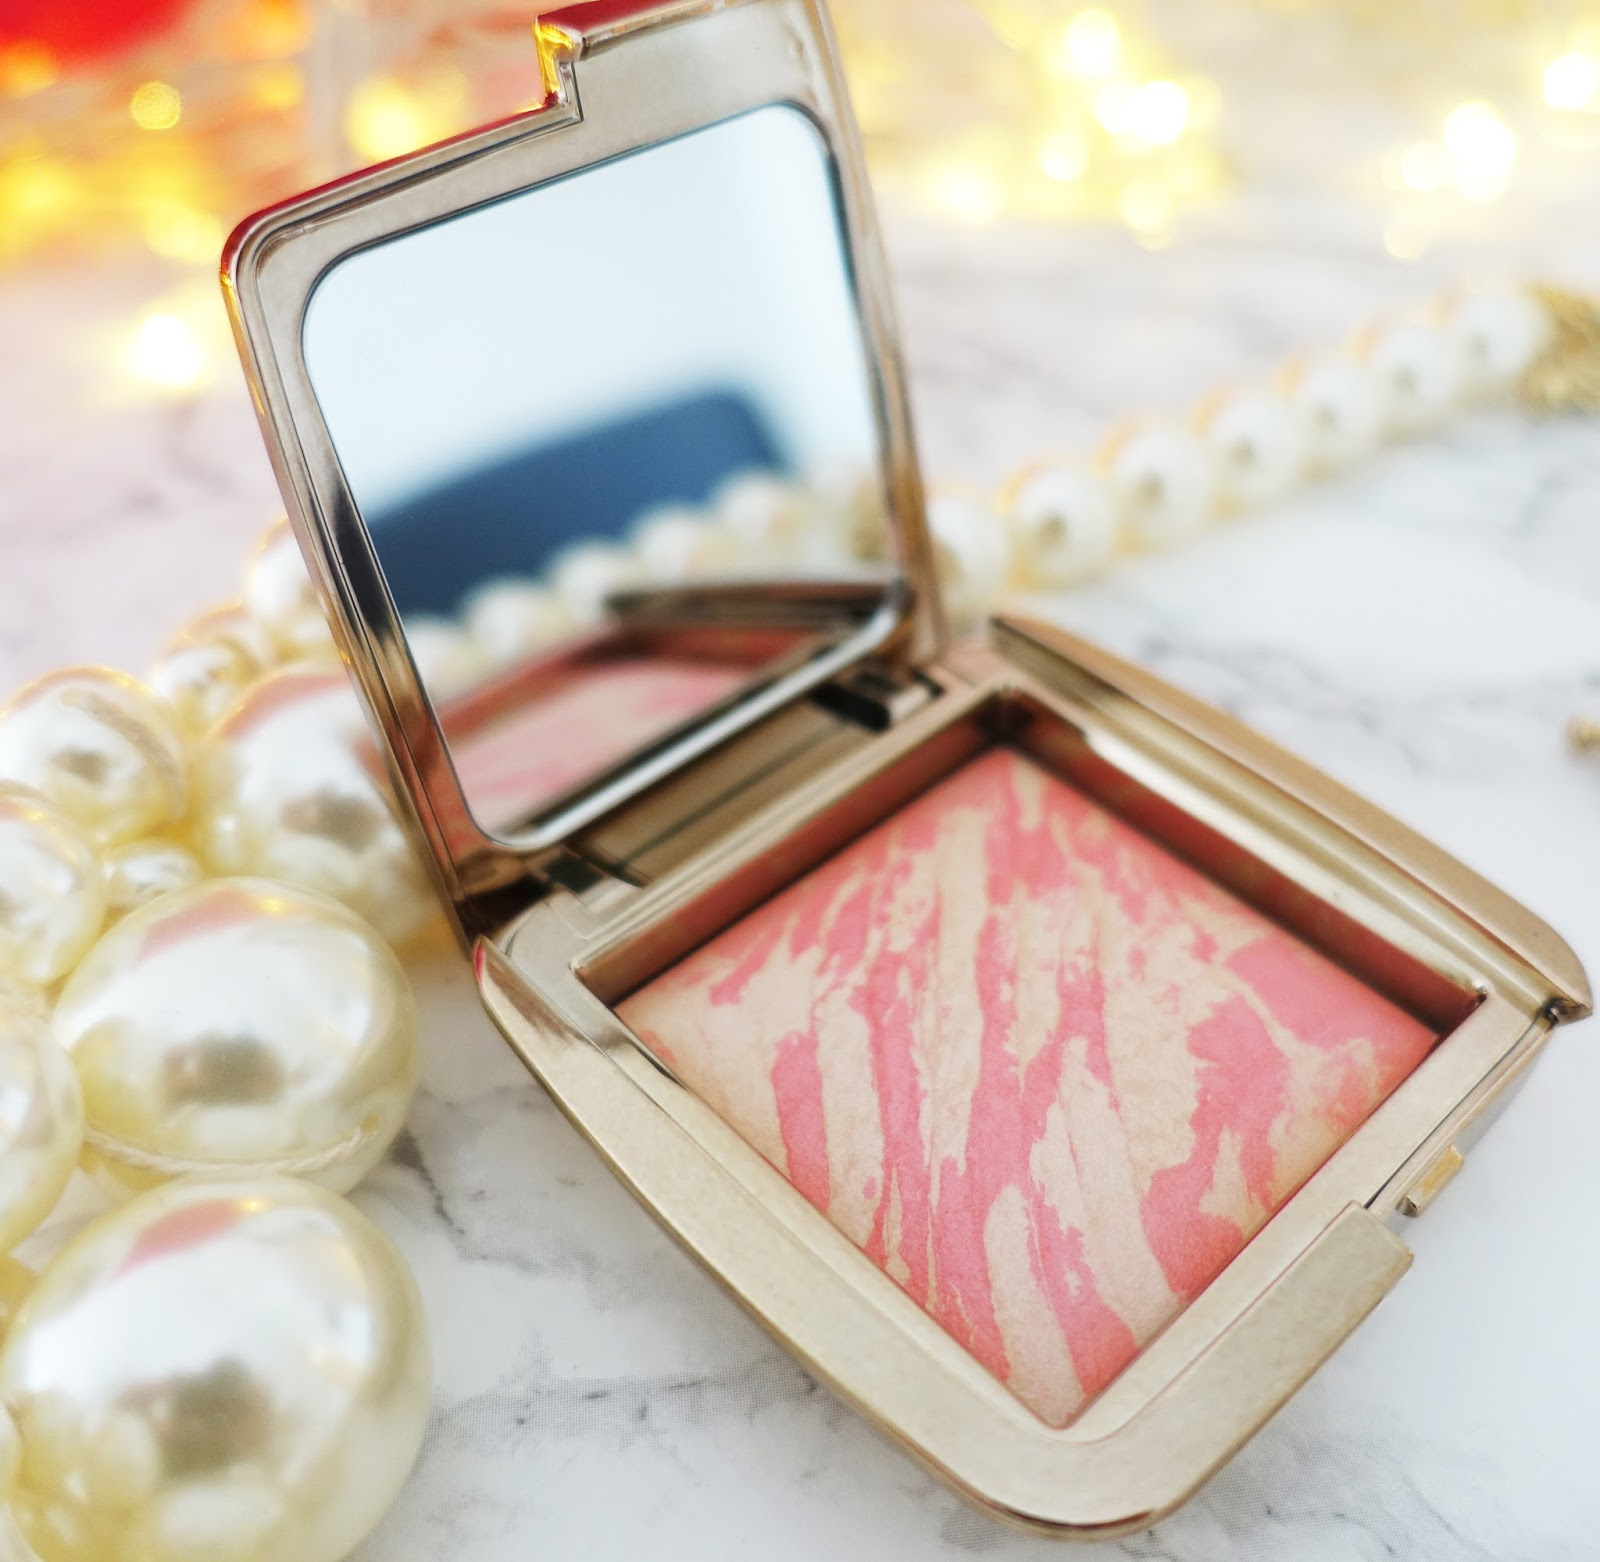 A beautiful blusher which gives a reflective light effect to make it look as if your skin is lit up.